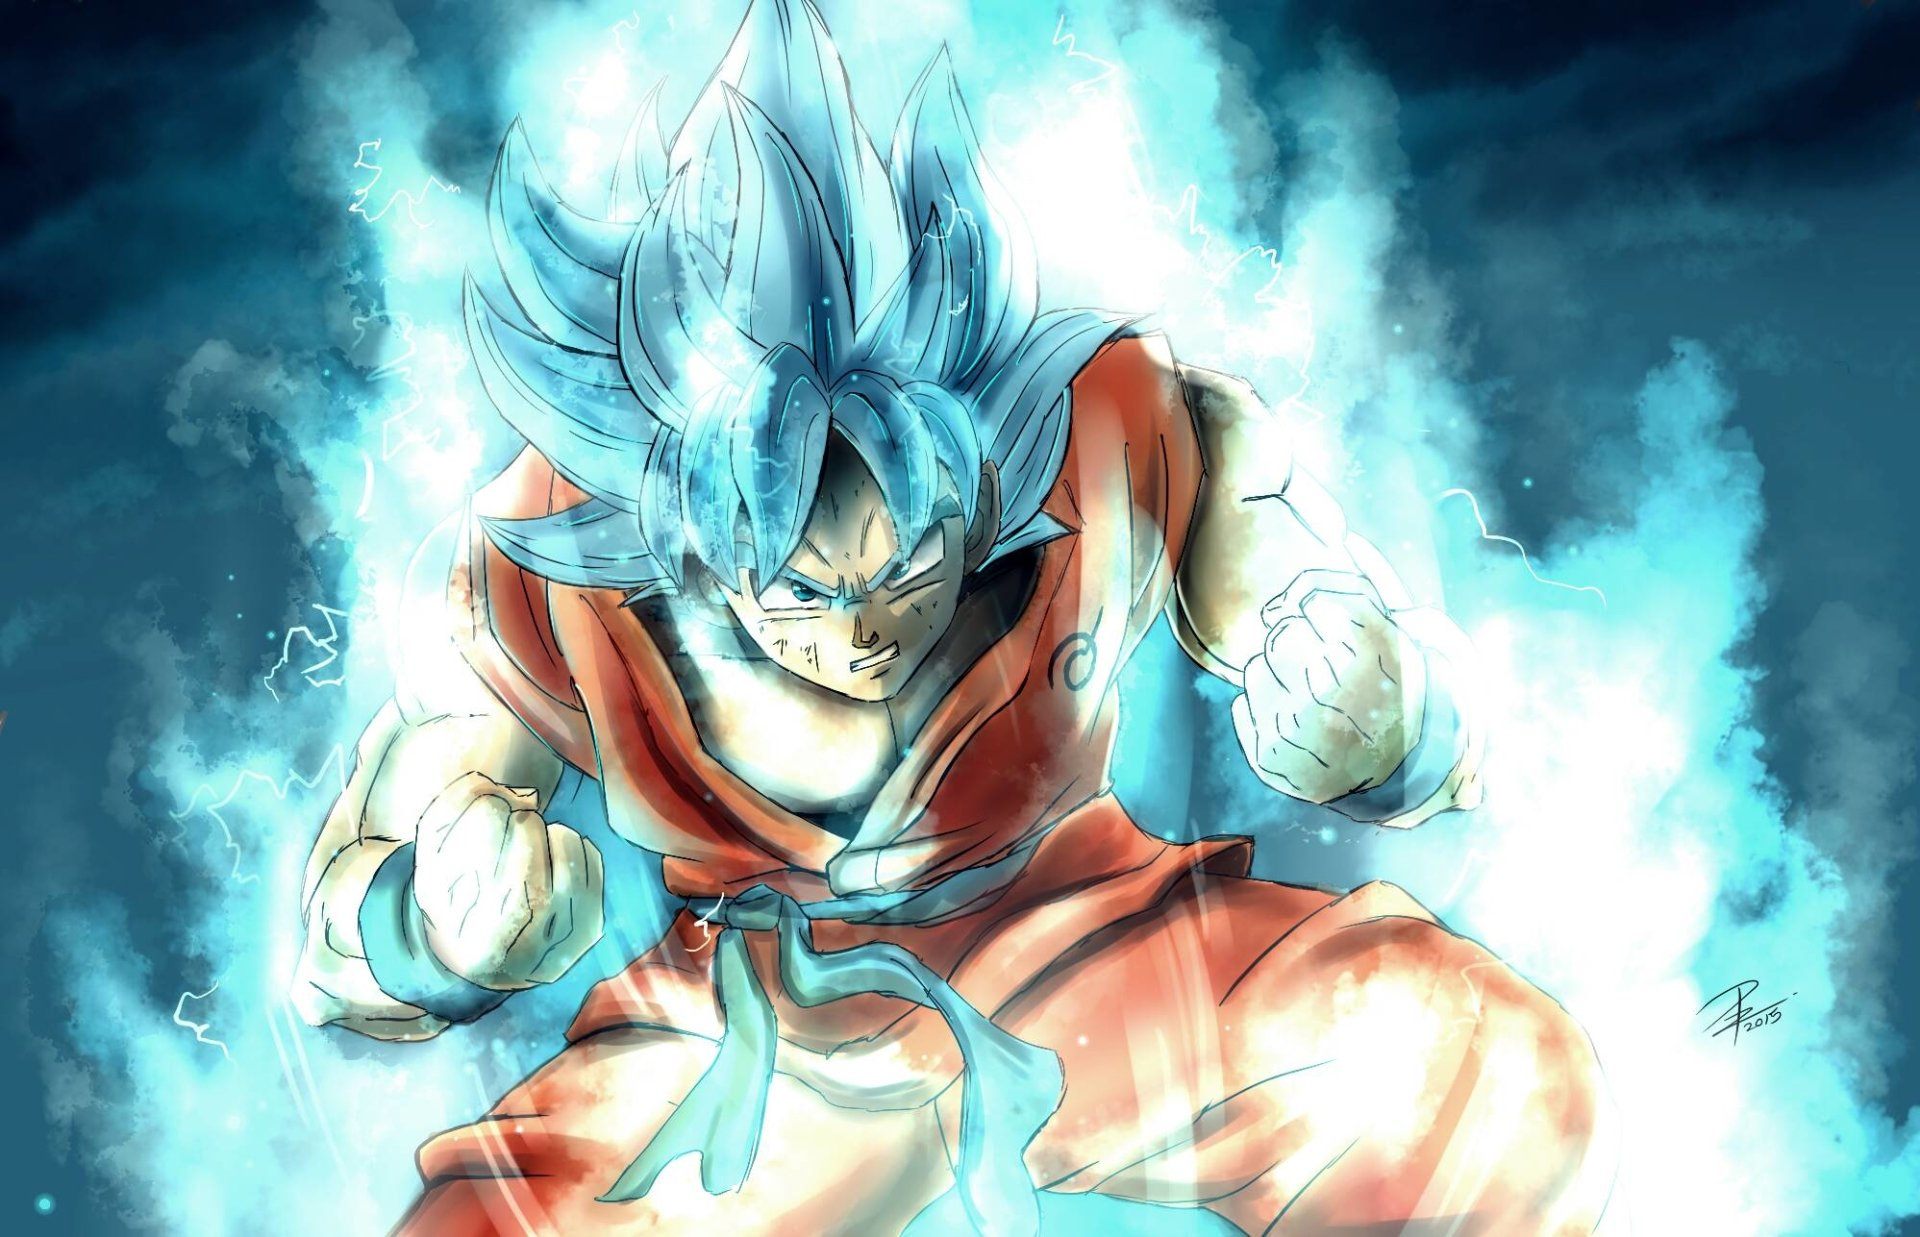 Anime - Dragon Ball Super  Goku Super Saiyan Blue Wallpaper